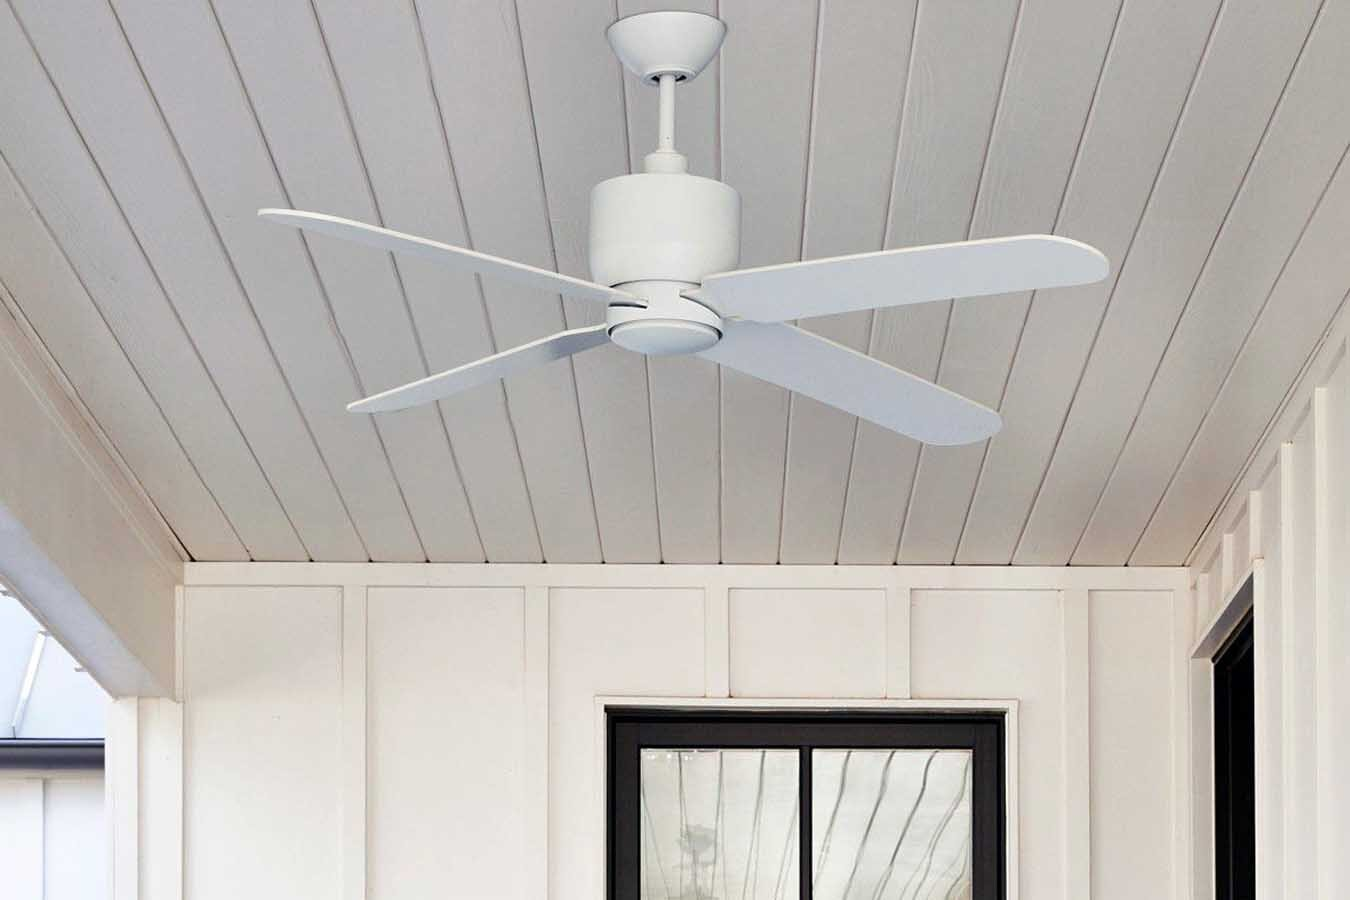 2019 Guide To Finding And Ing The Best Outdoor Ceiling